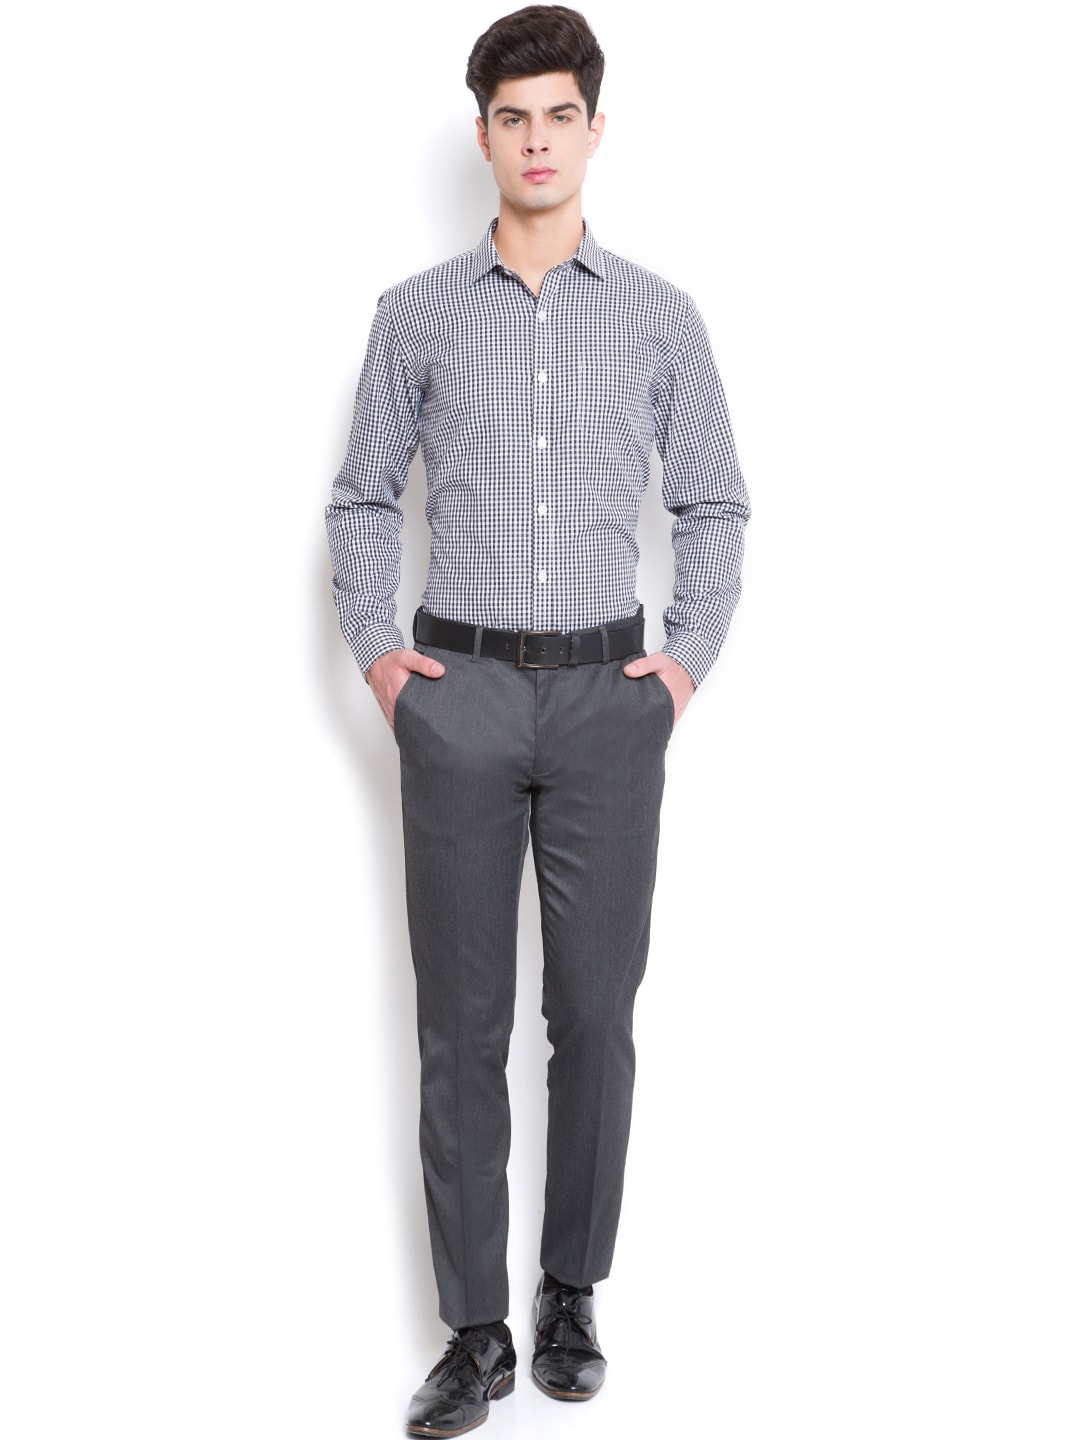 Formal Pant Shirt Gents | Www.pixshark.com - Images Galleries With A Bite!